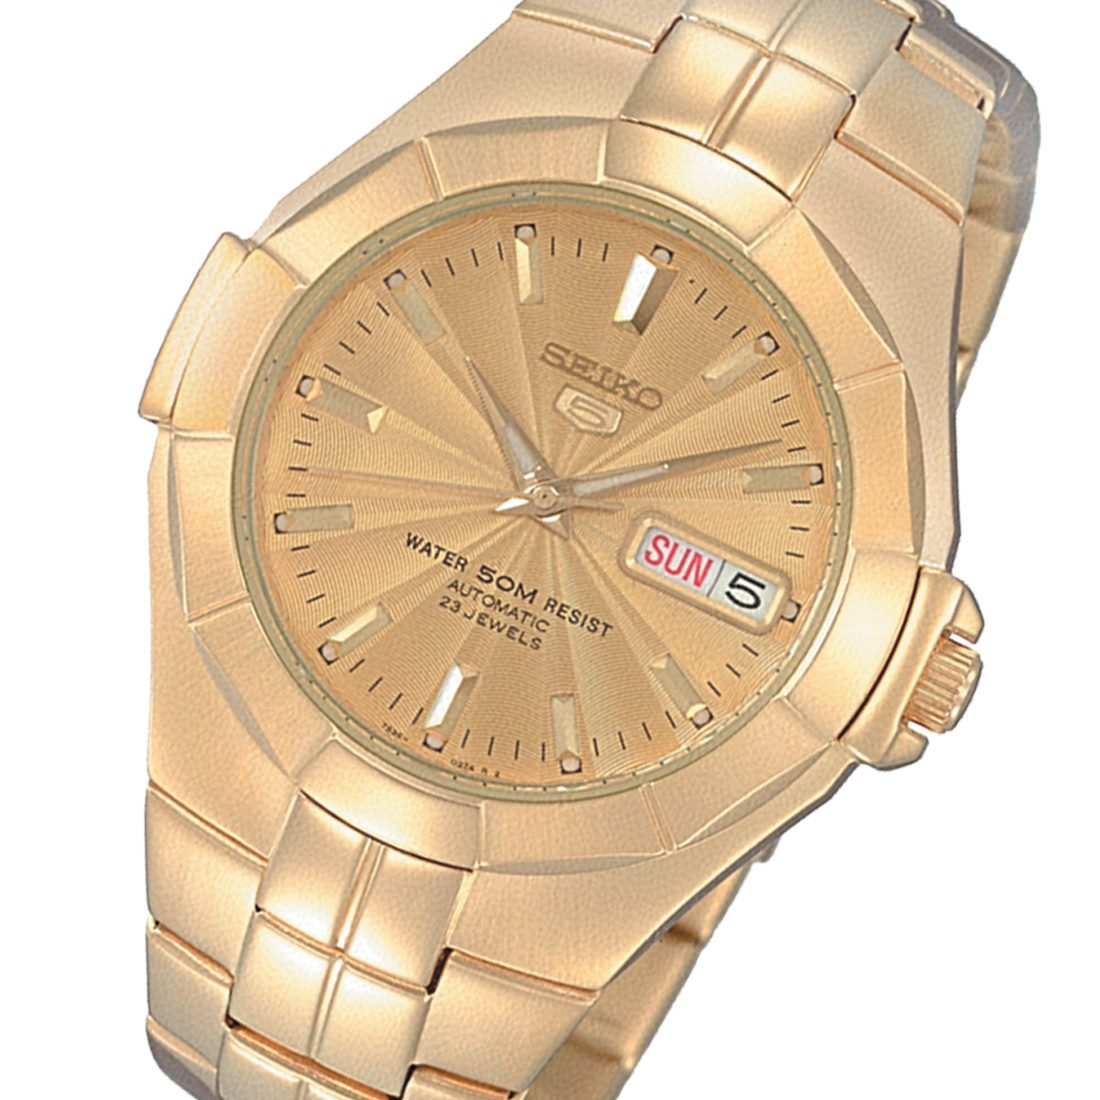 SEIKO SNZE32 SNZE32K 7S36 Hardlex Crystal Gold Plated Automatic Mens Watch